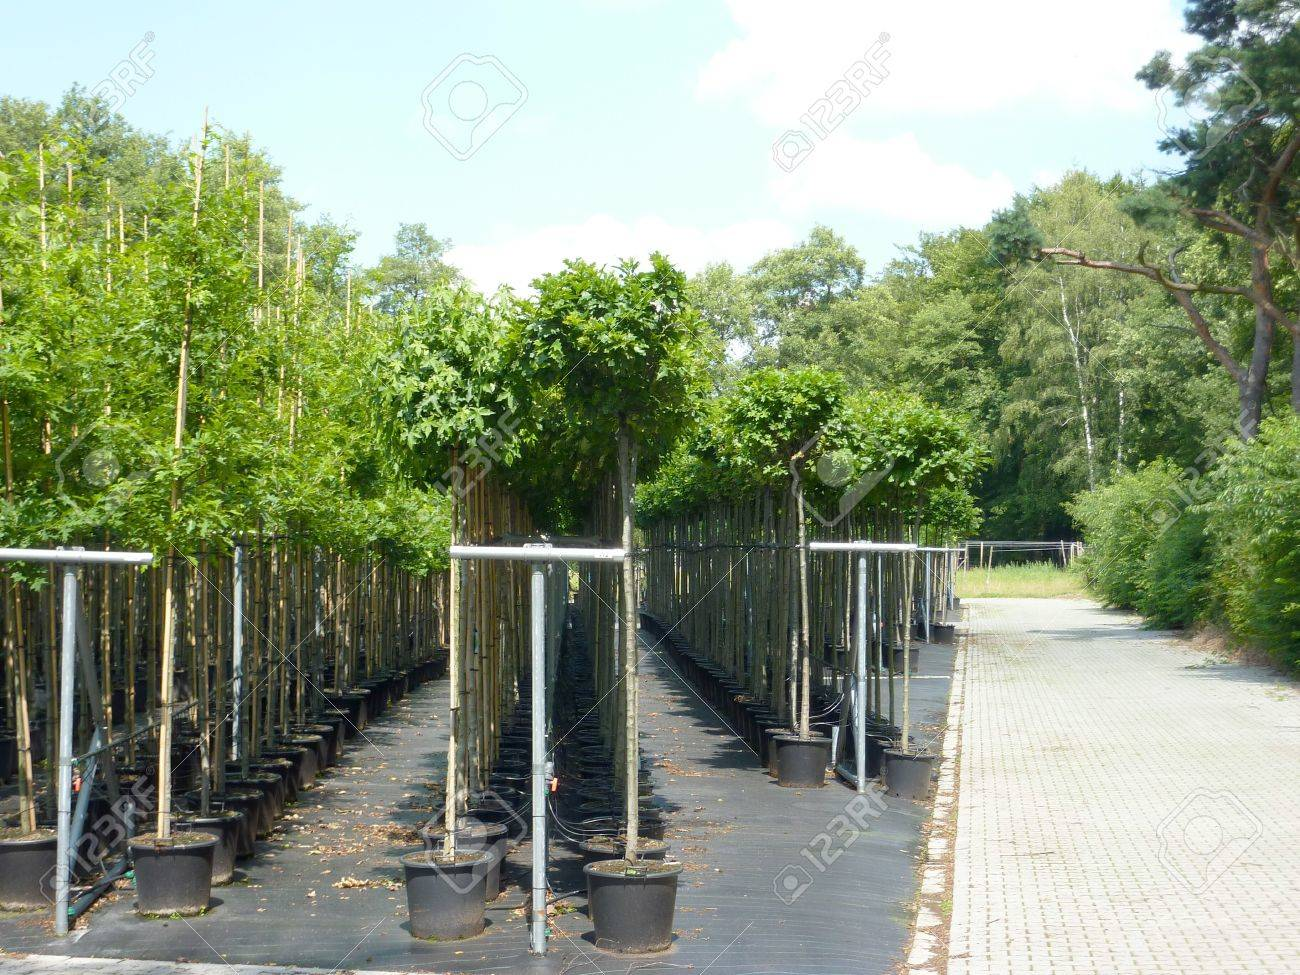 A tree nursery with young trees in plastic containers Stock Photo - 12506320